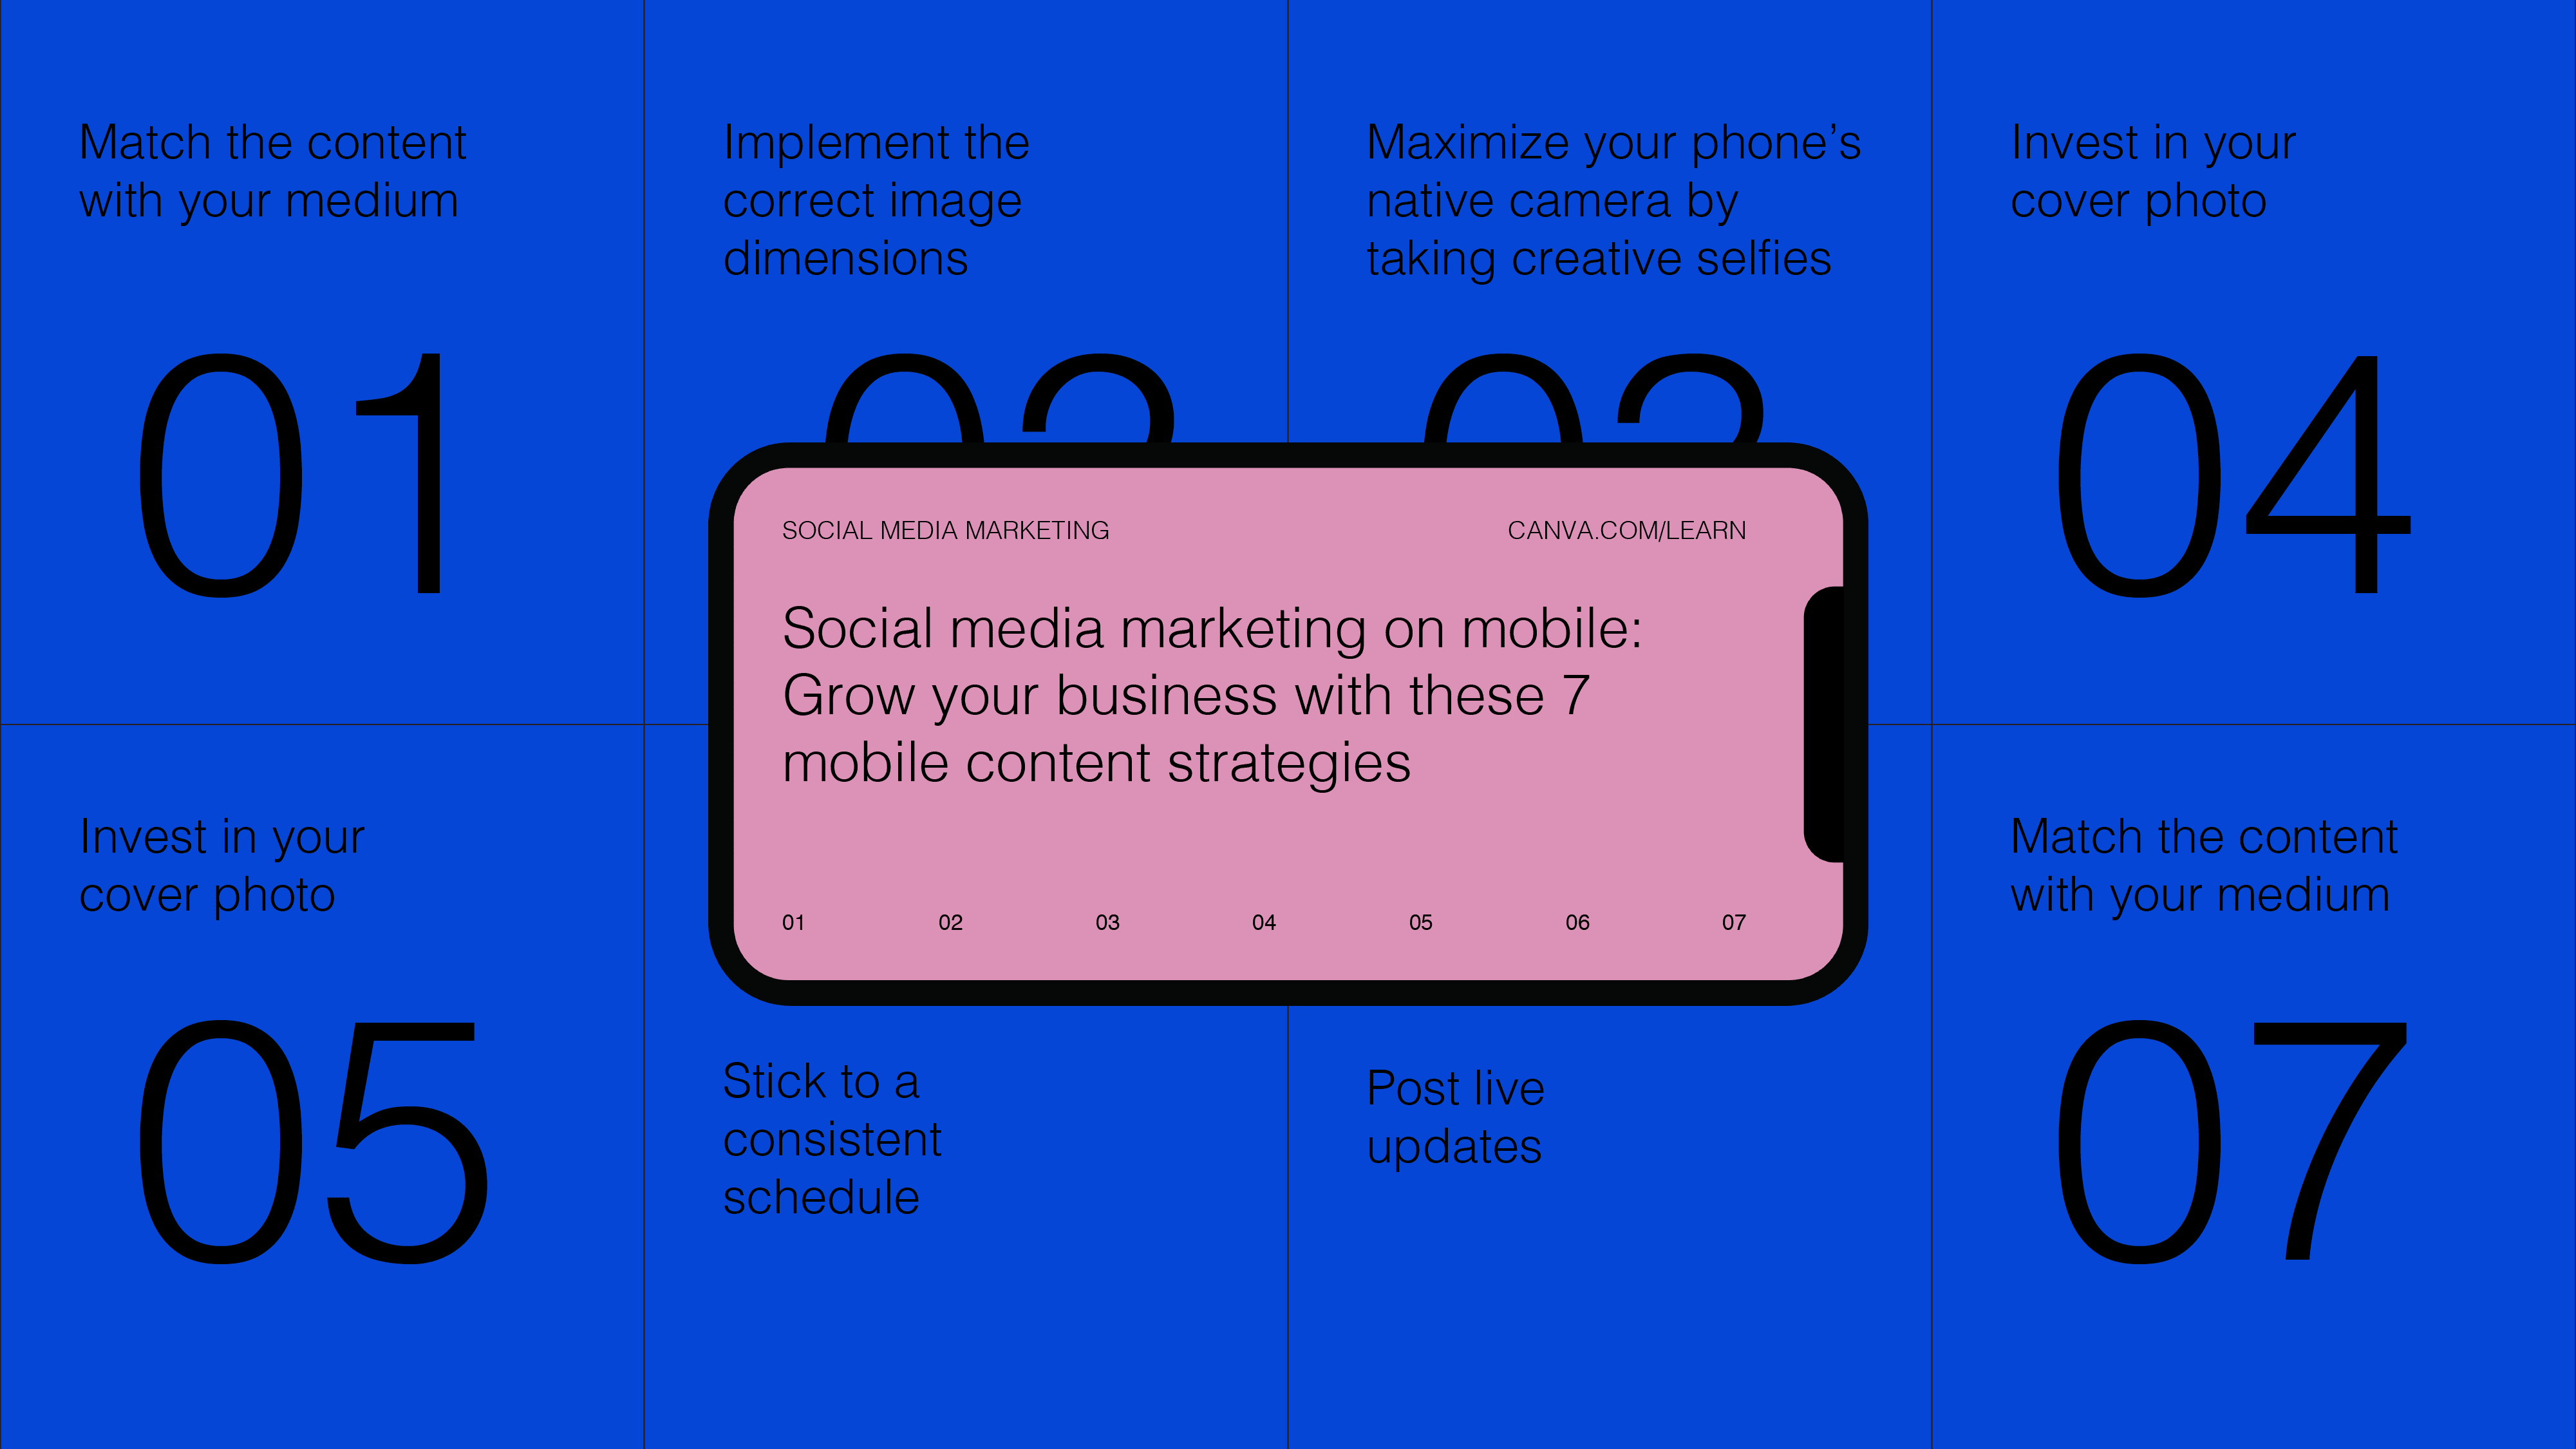 Social media marketing on mobile- Grow your business with these 7 mobile content strategies